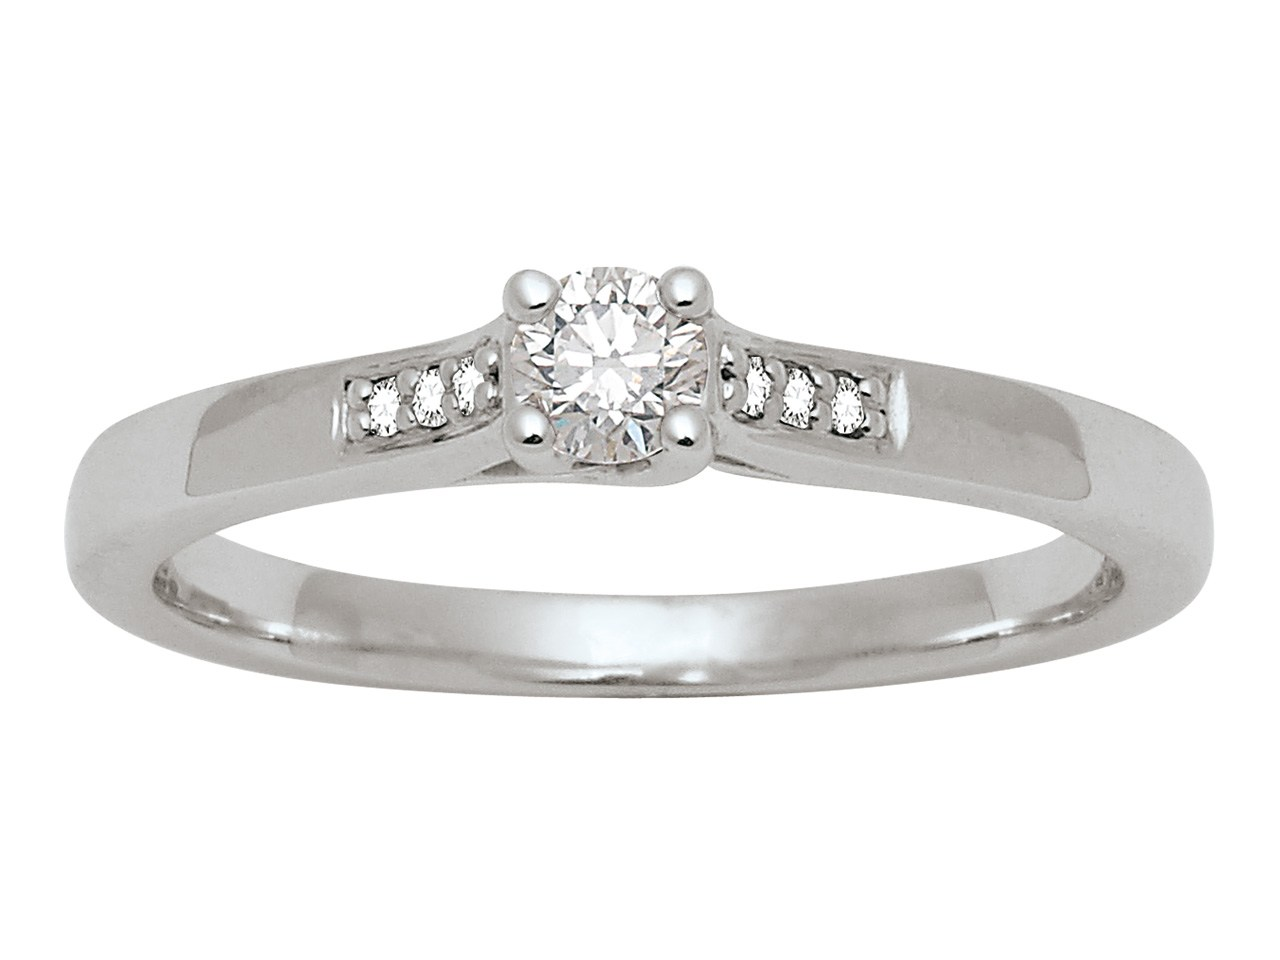 Solitaire accompagné, Or gris 18 k, Dts 0,18 ct, doigt 52